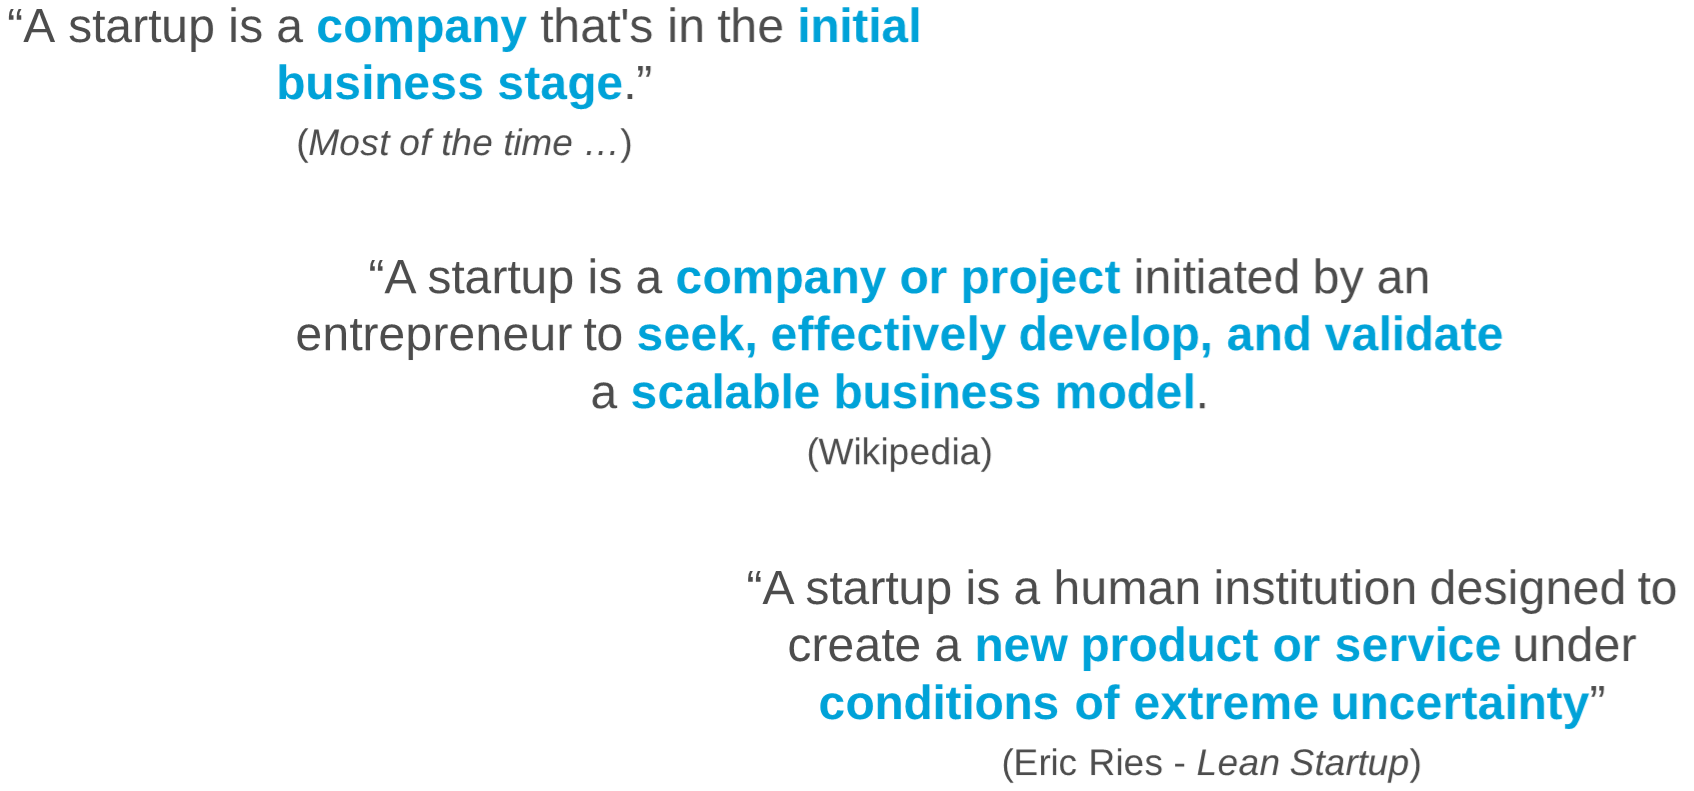 various definitions of a startup